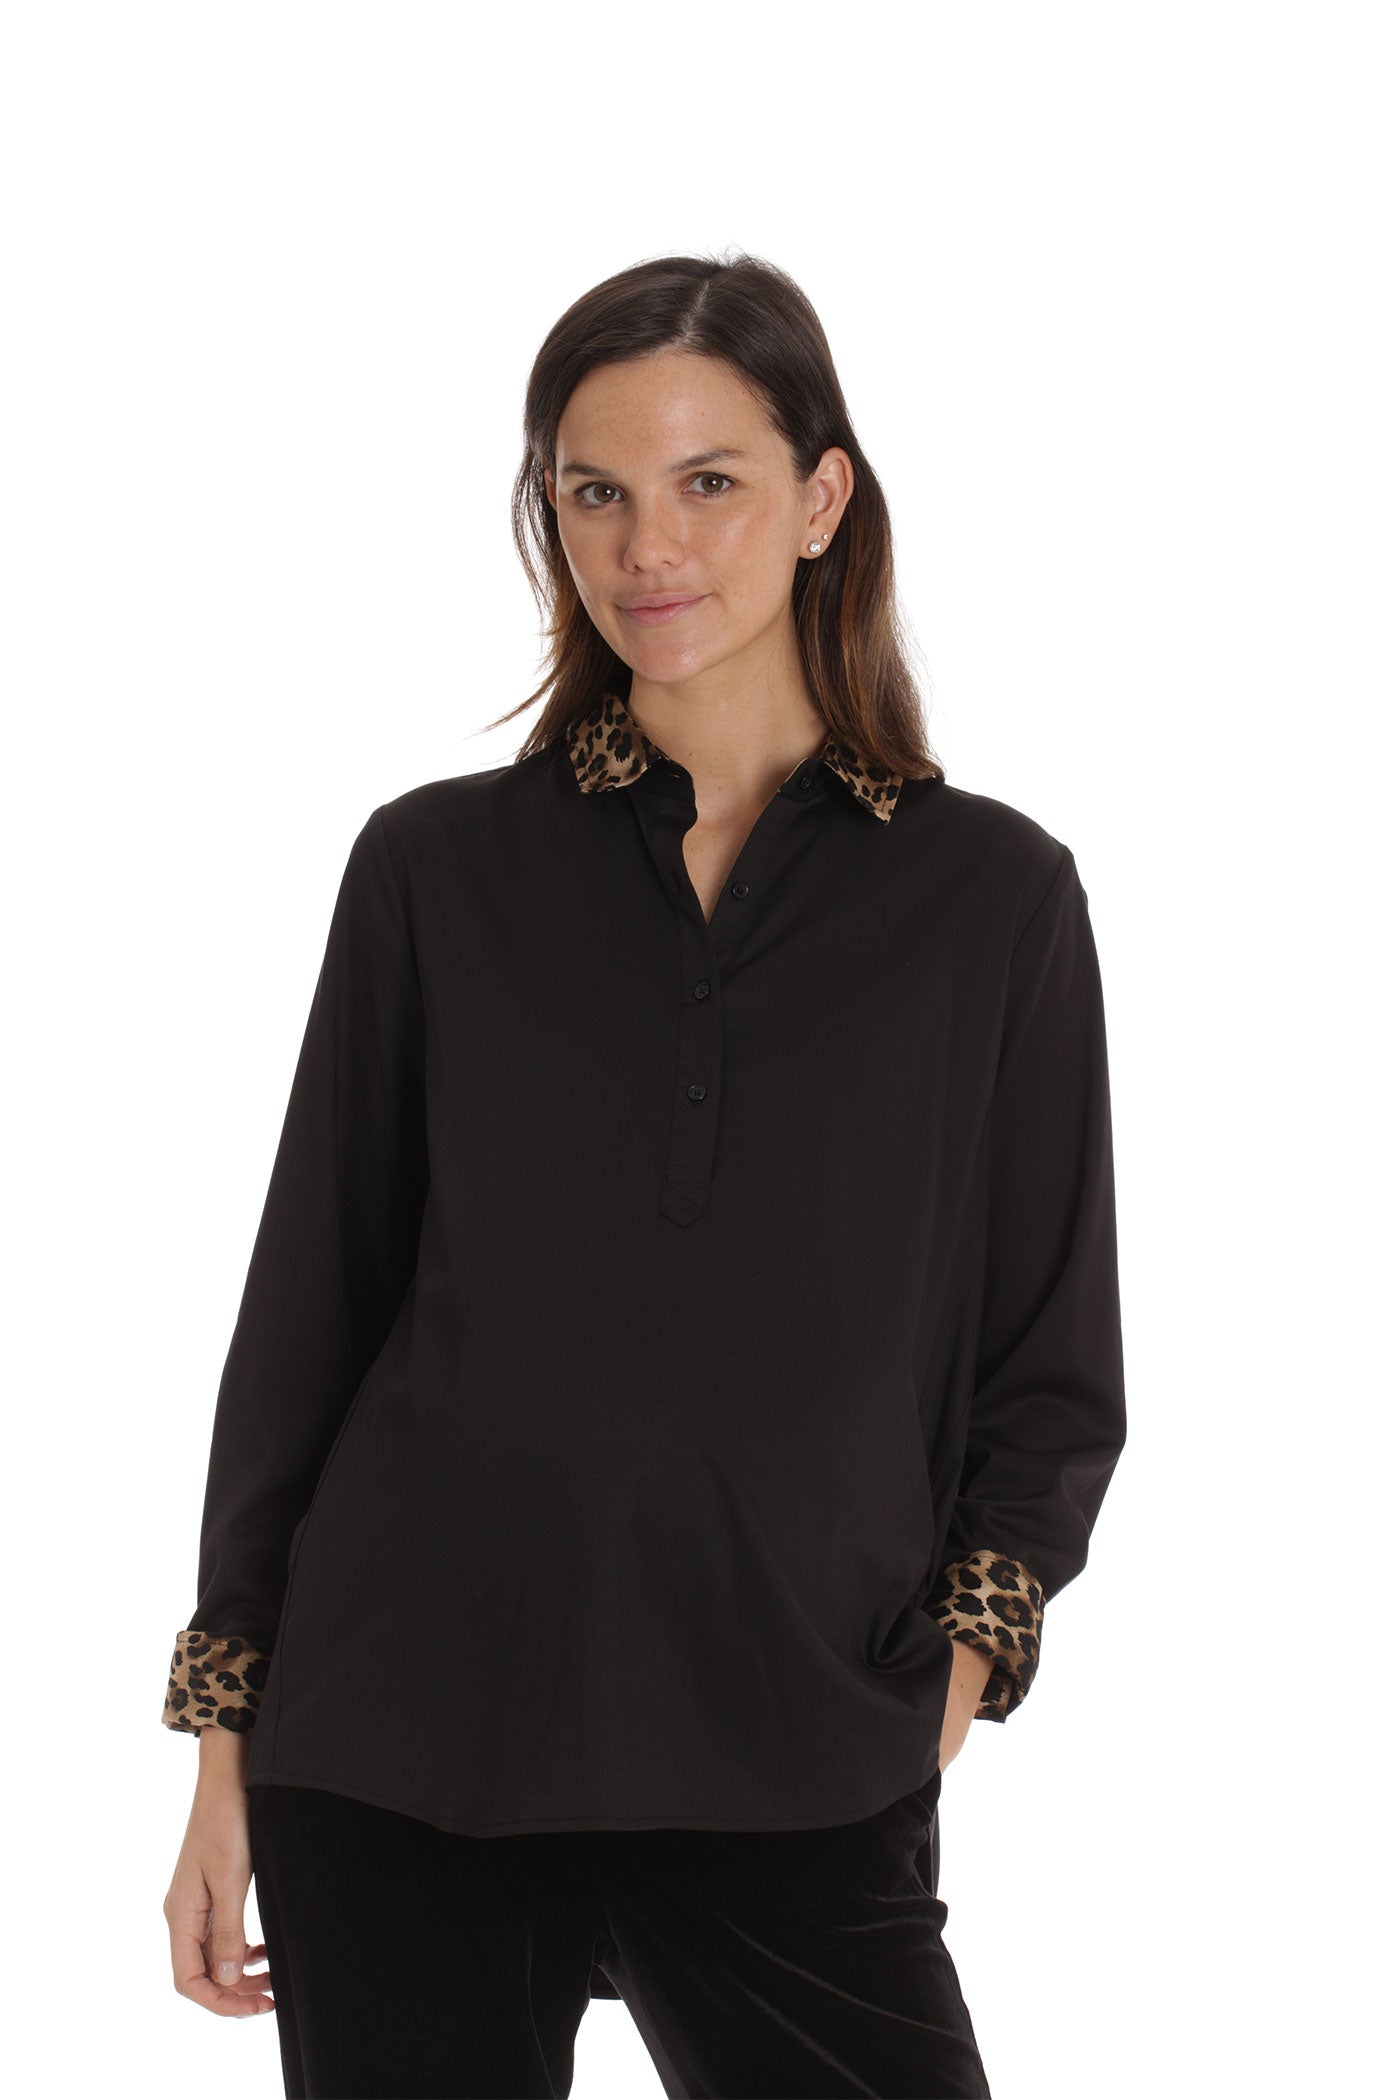 The Rohmi Top - Black Leopard